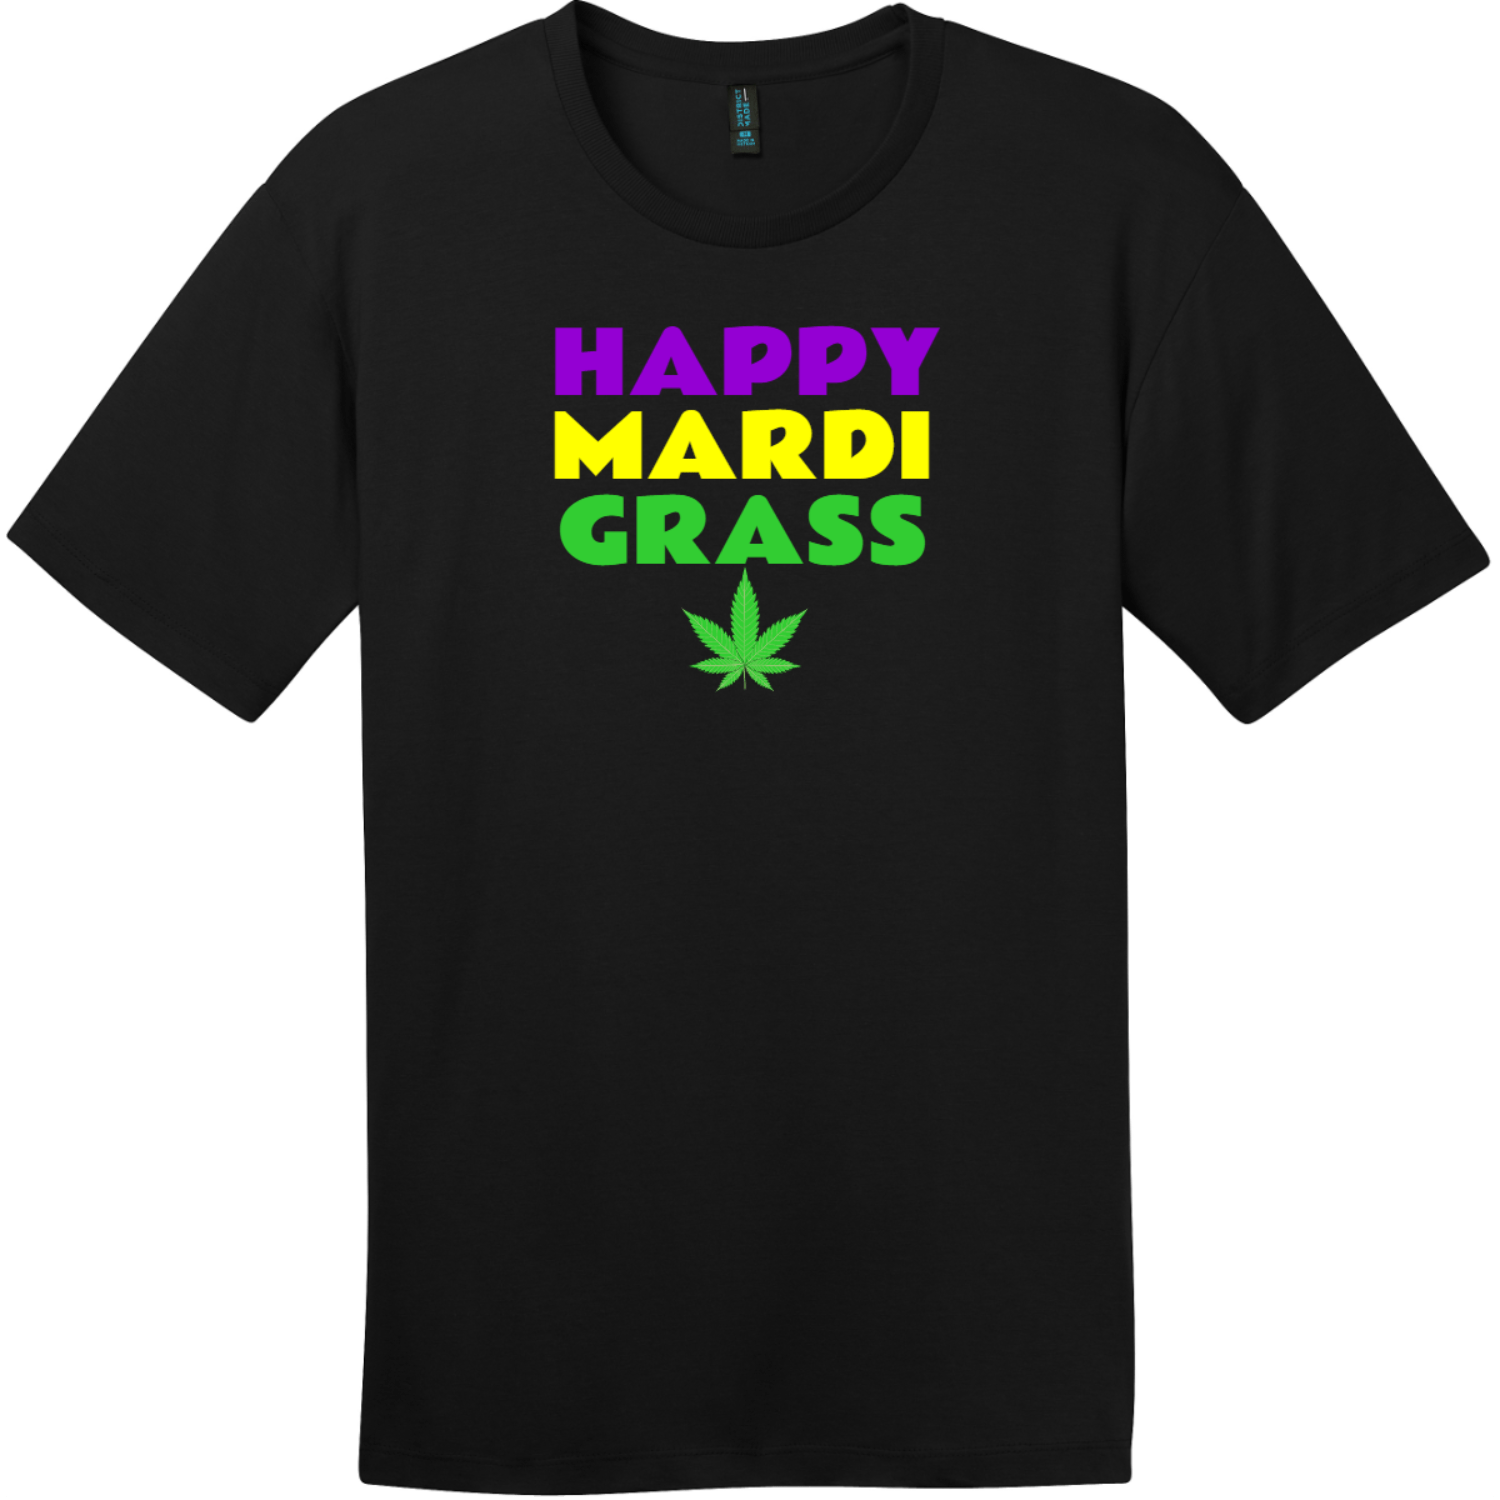 Happy Mardi Grass Weed T-Shirt Jet Black District Perfect Weight Tee DT104